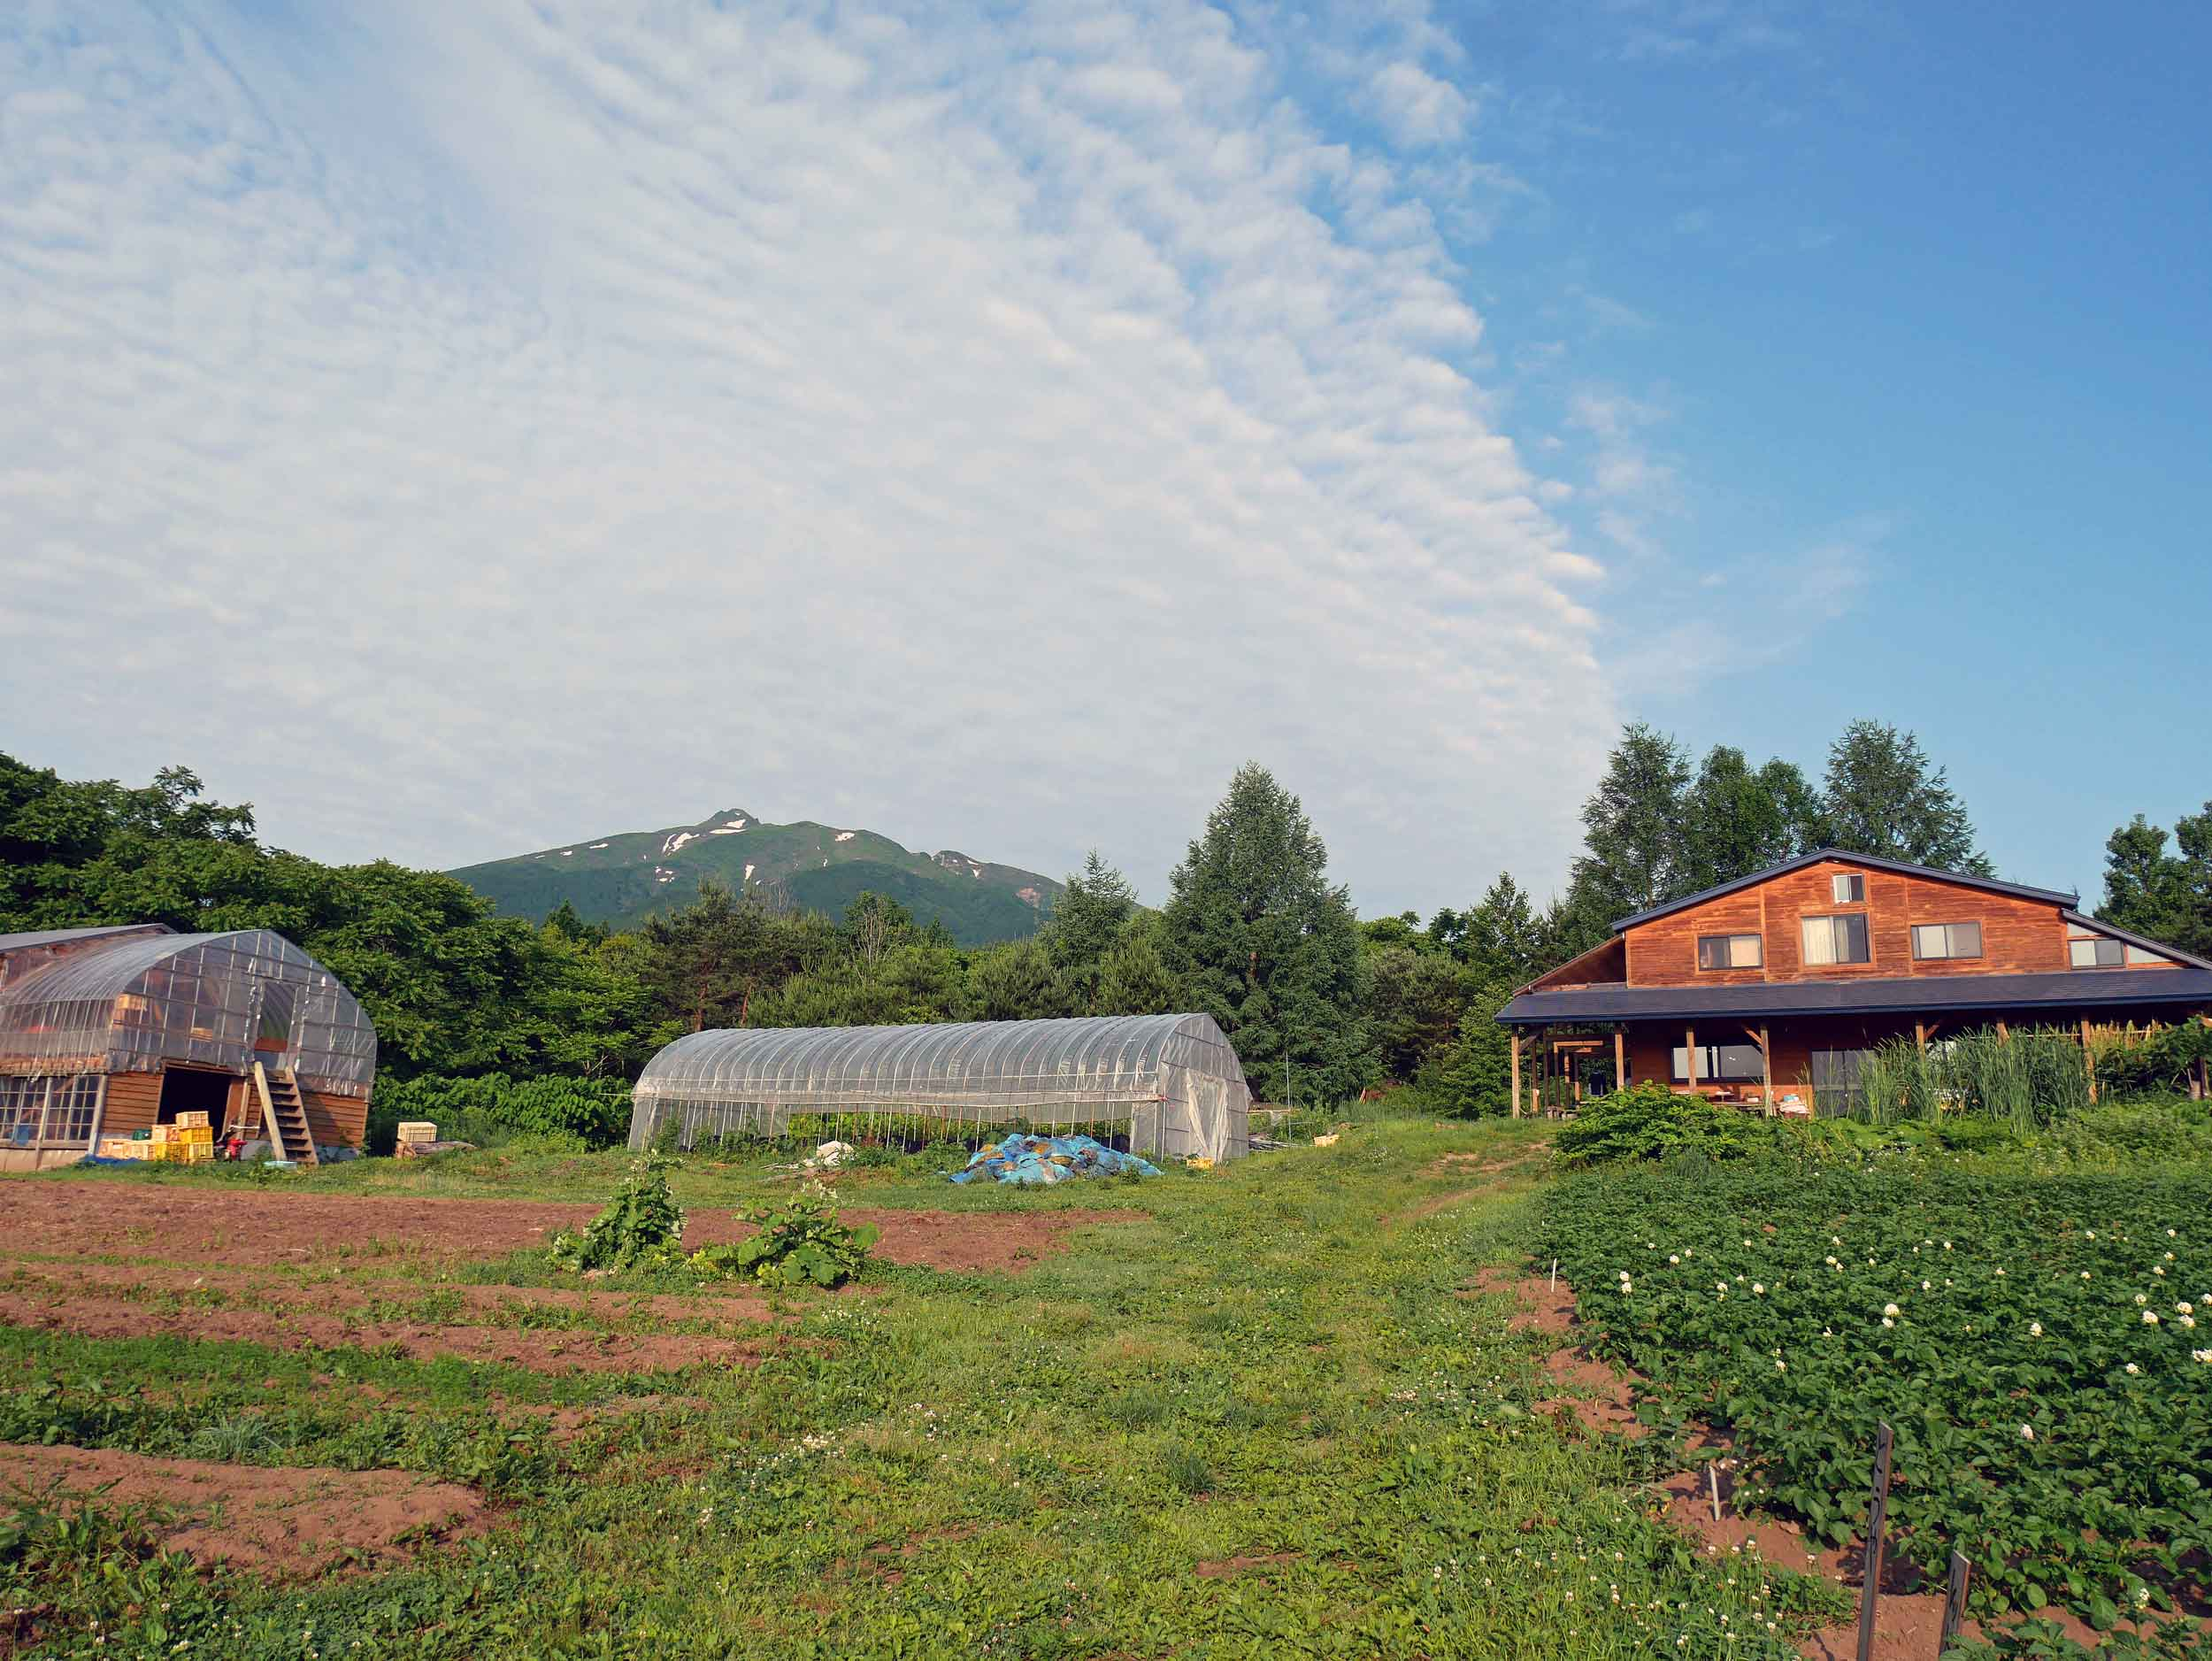 Bucolic Shiratori Family Farm in northern Japan with Mt. Iwaki in the background, and yes, that is still snow on the peak in mid-June.